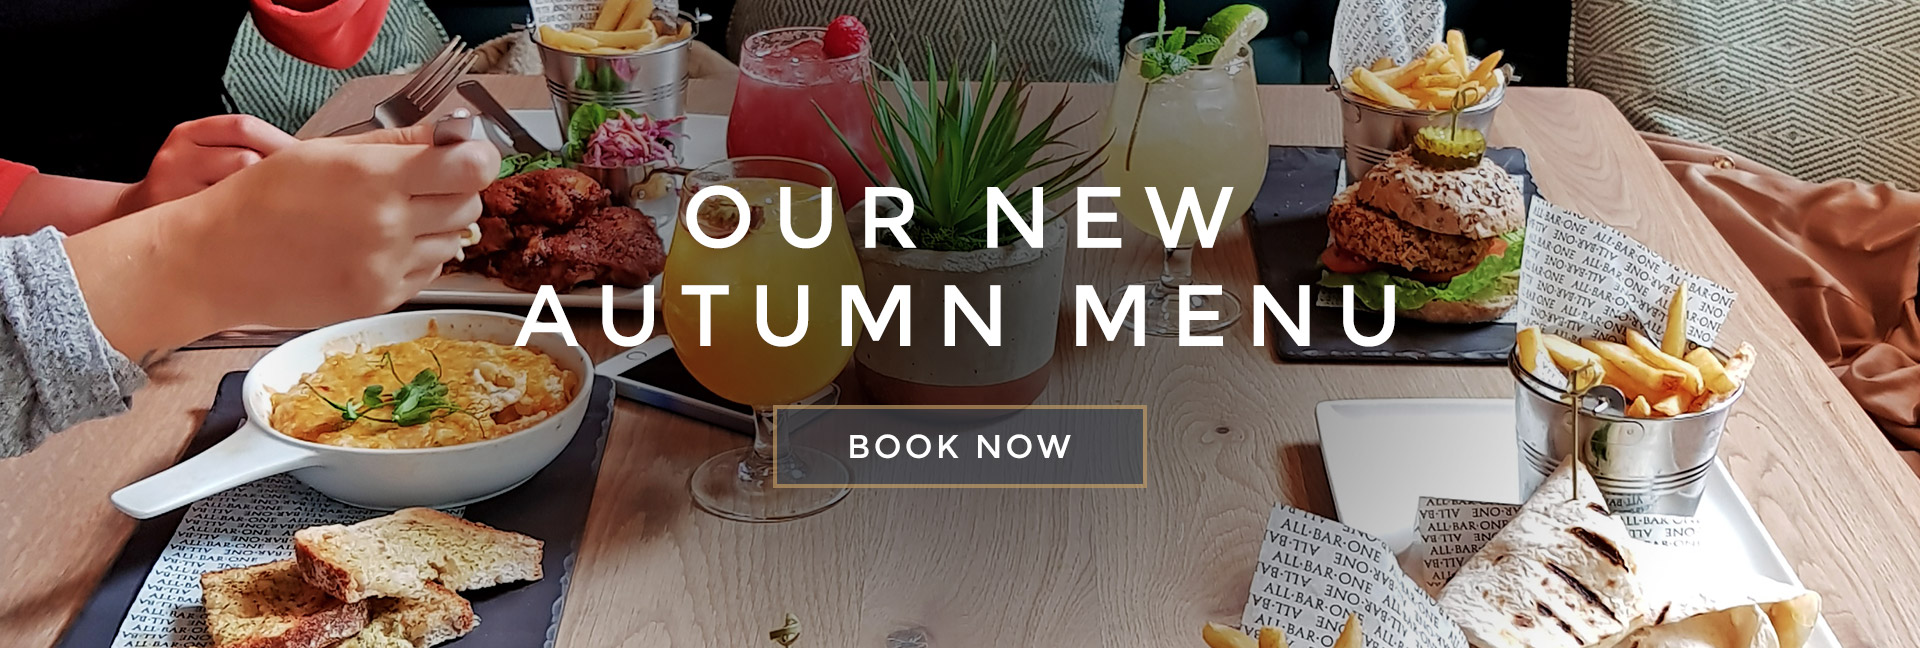 Our new Autumn menu at All Bar One Guildford - Book now